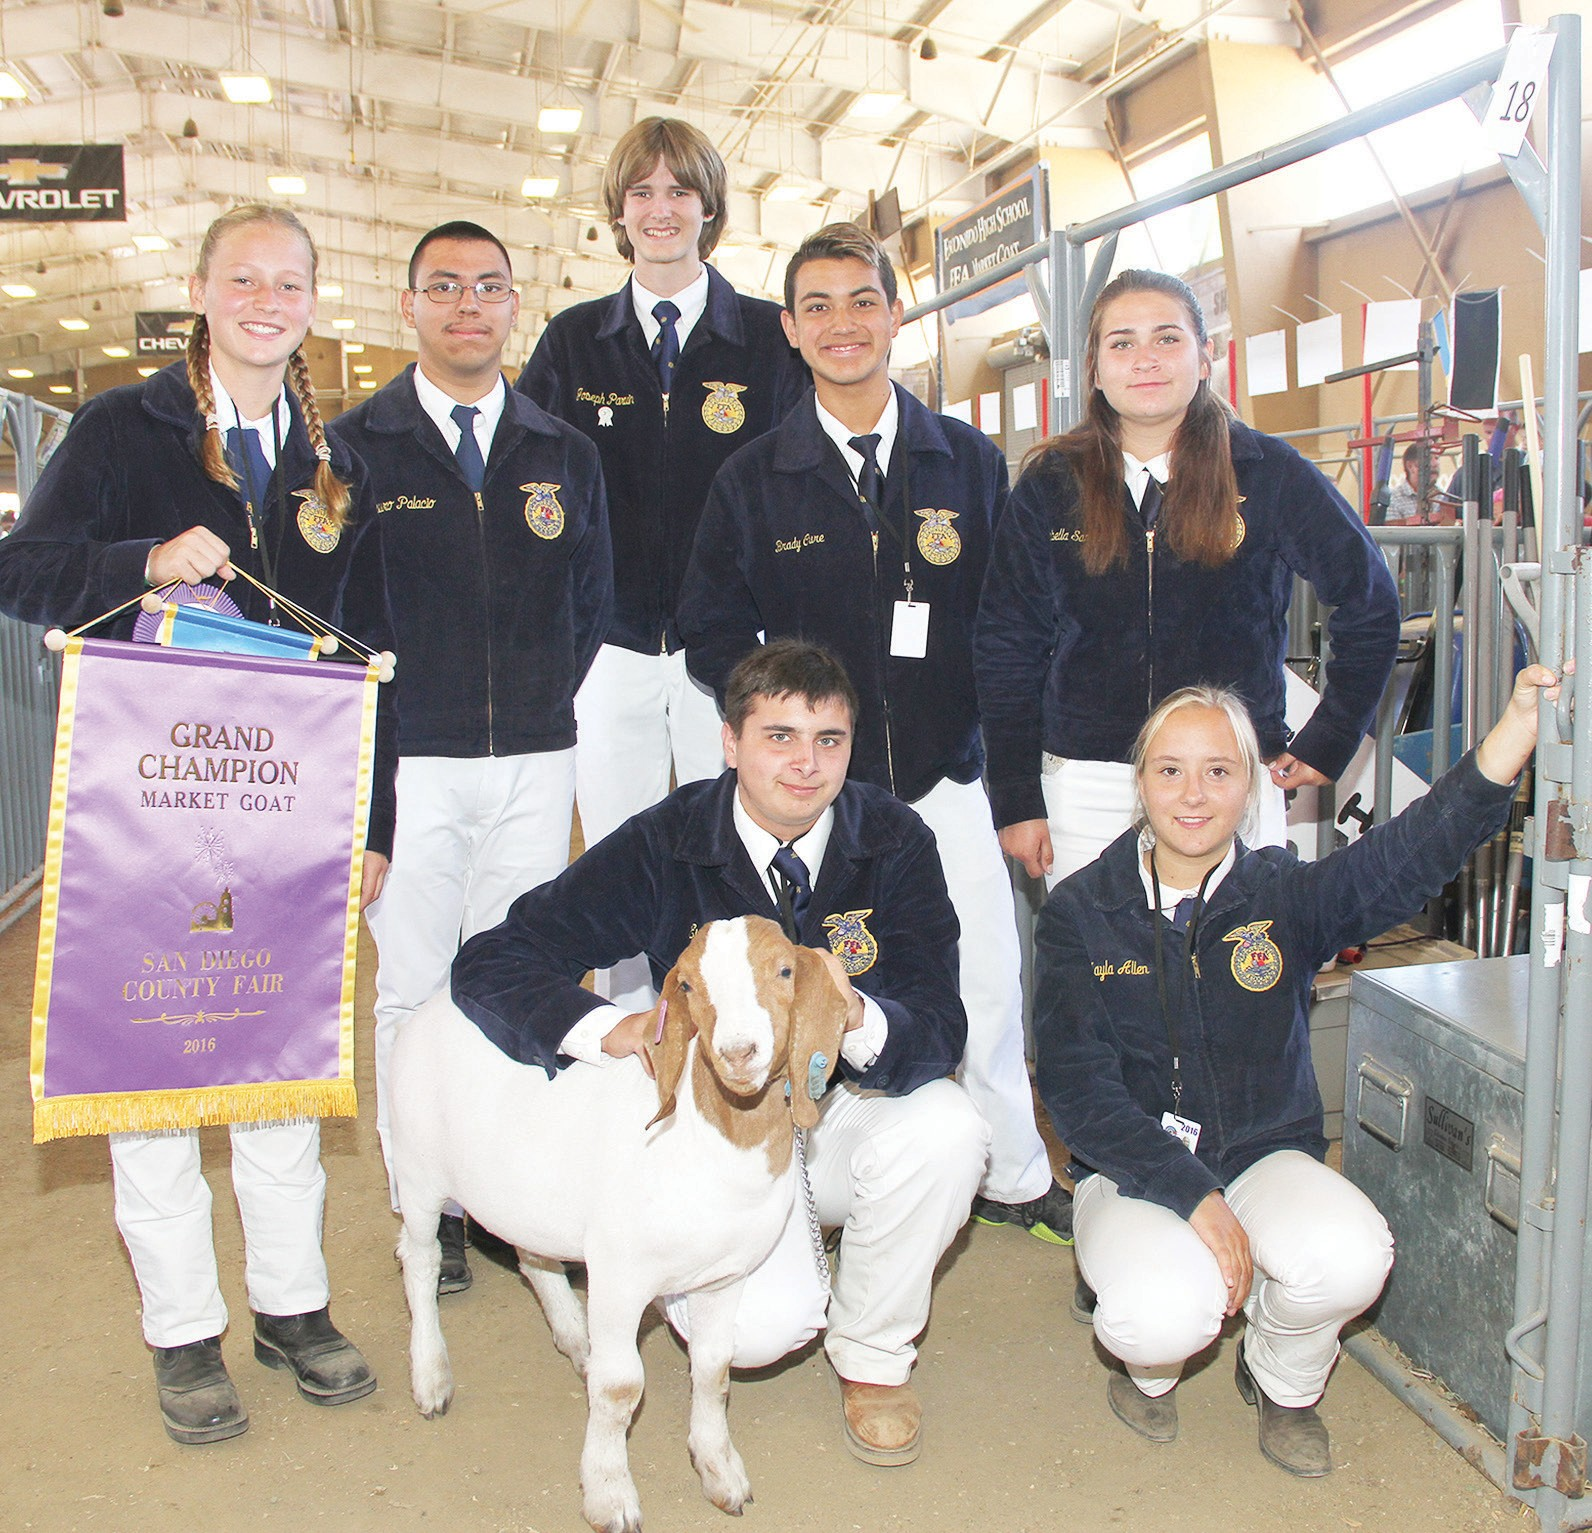 Students from Escondido, (kneeling from left) Evan Hildreth, age 16, with his goat Lucky and 15-year-old Cassandra Coffey; (standing, from left) Award winner Samantha Christensen, age 14, Mauro Palacio, age 17, Joseph Parvin, age 17, Brady Cure, age 14 and Isabella Sanchez, age 15, gather in the barn prior to the goat auction. Photo by Carla Van Wagoner